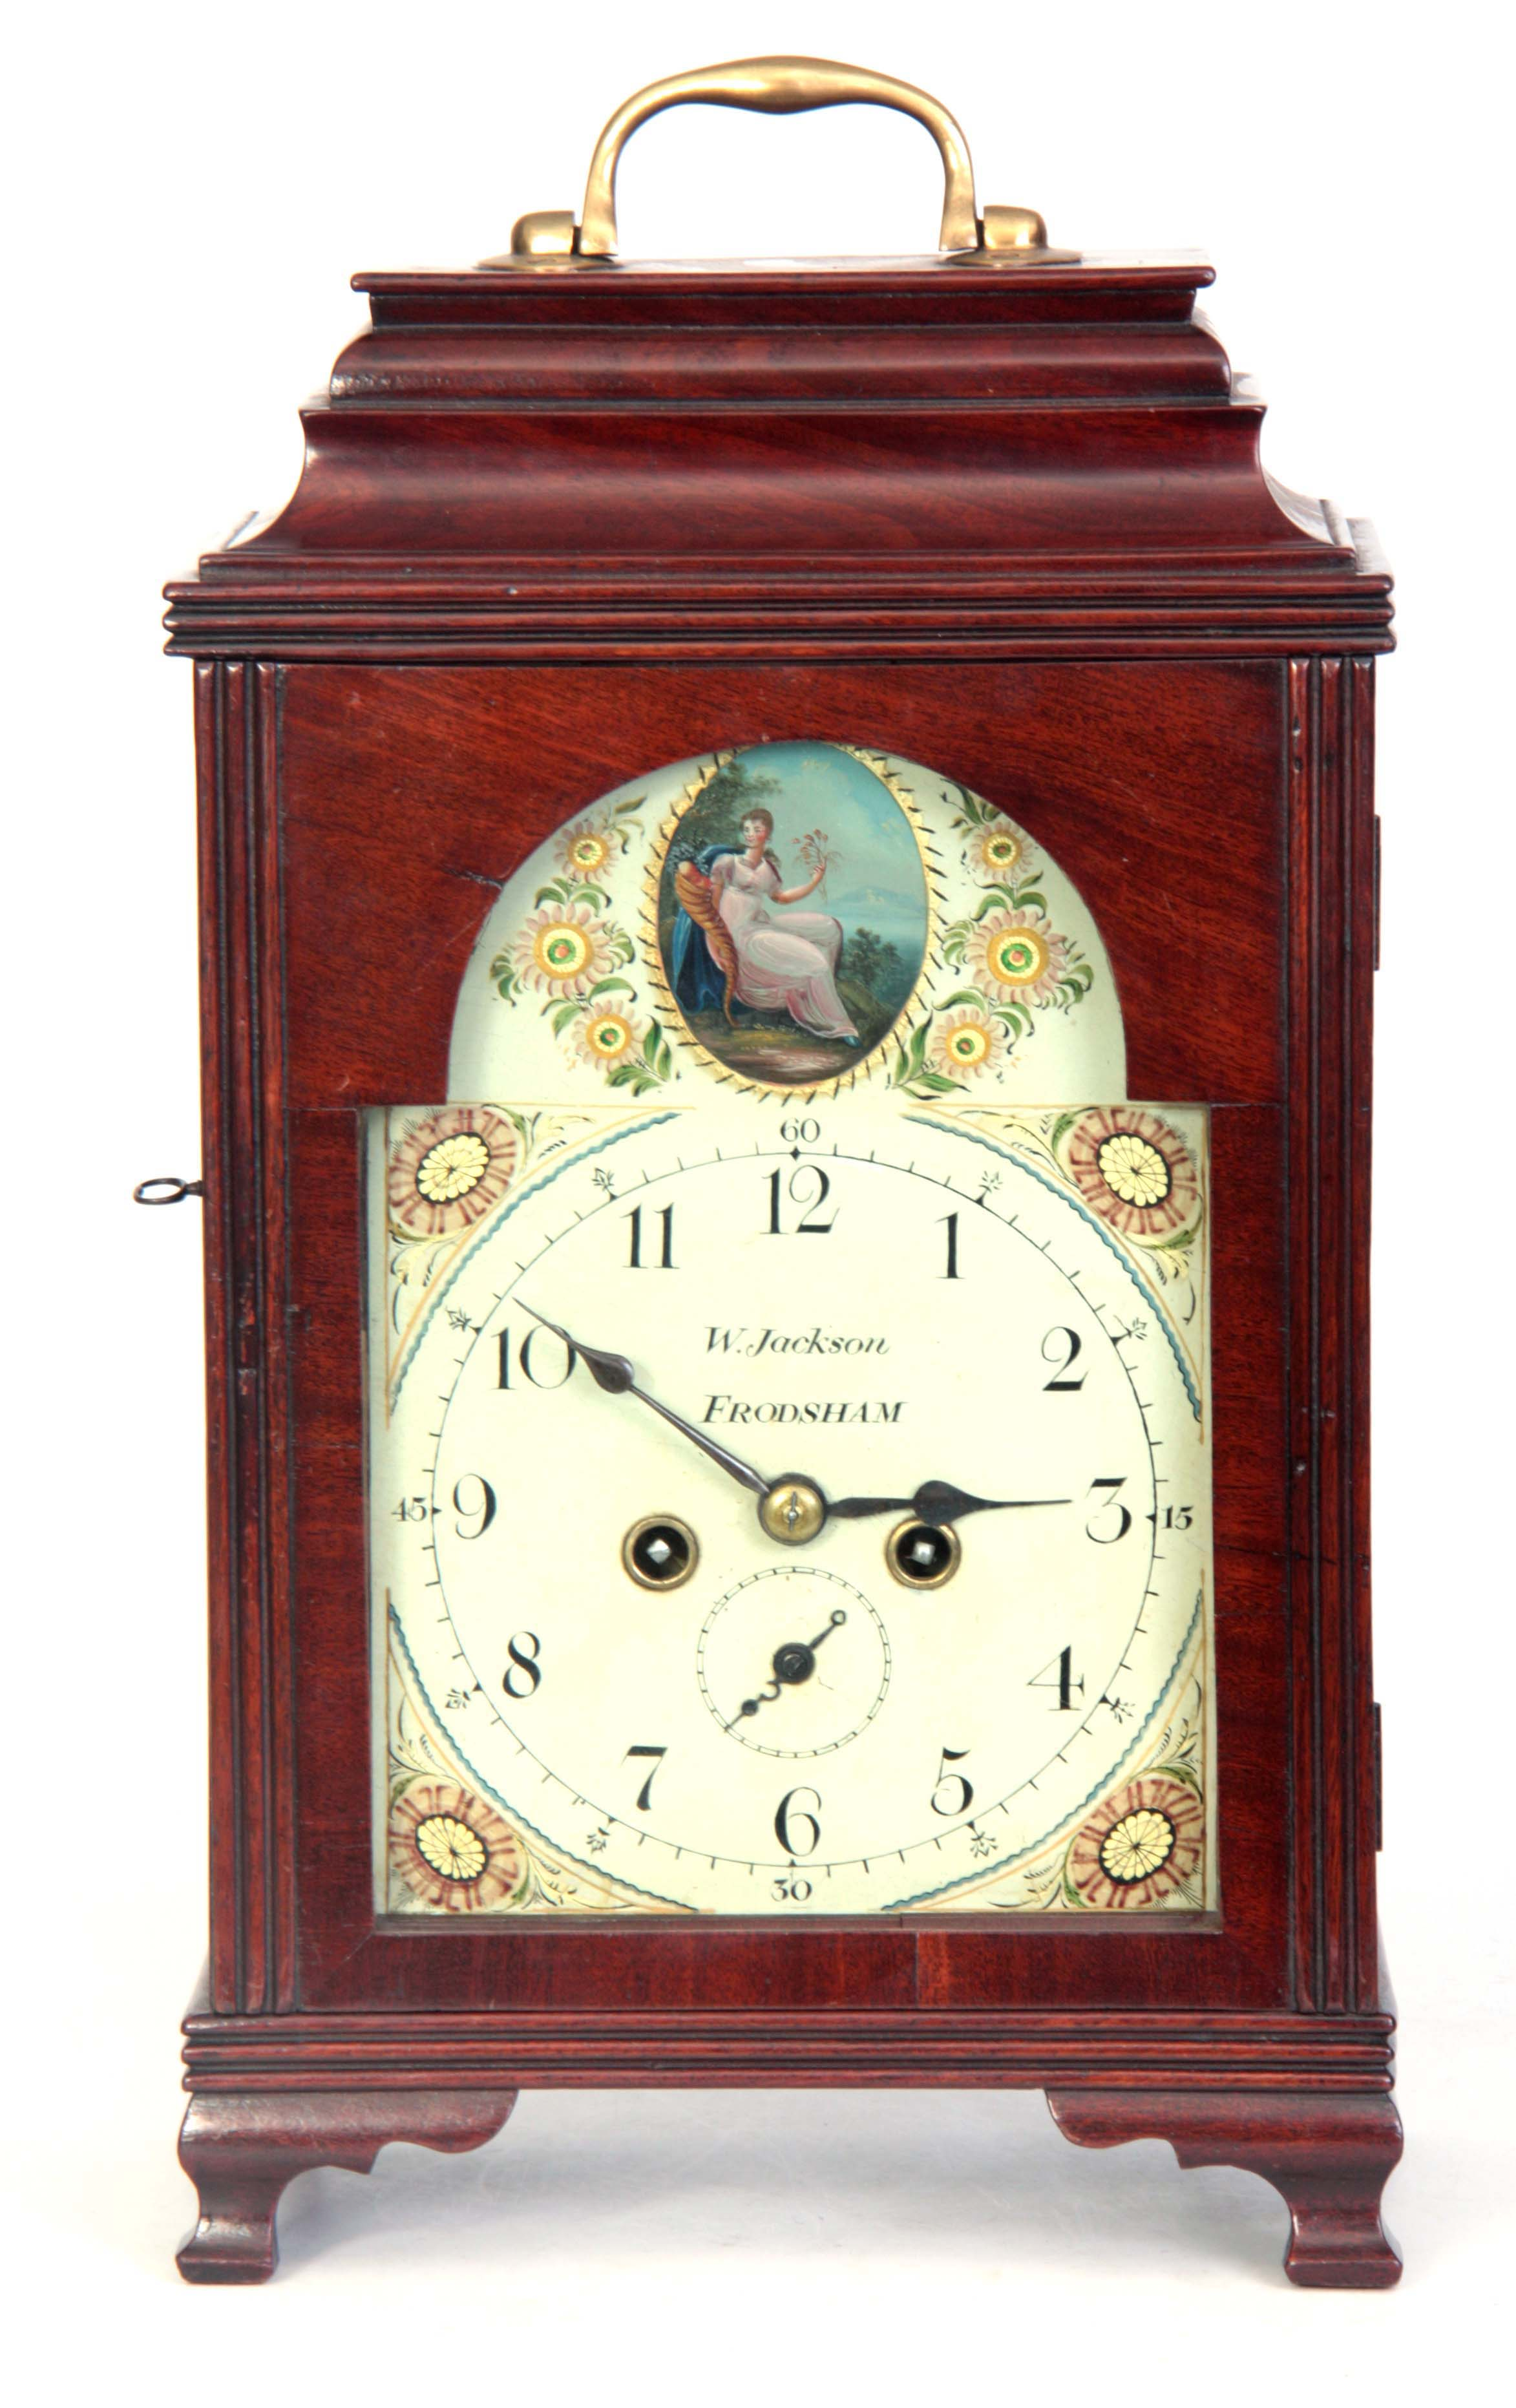 WILLIAM JACKSON, FRODSHAM A GEORGE III PAINTED DIAL MAHOGANY BRACKET CLOCK the case with moulded